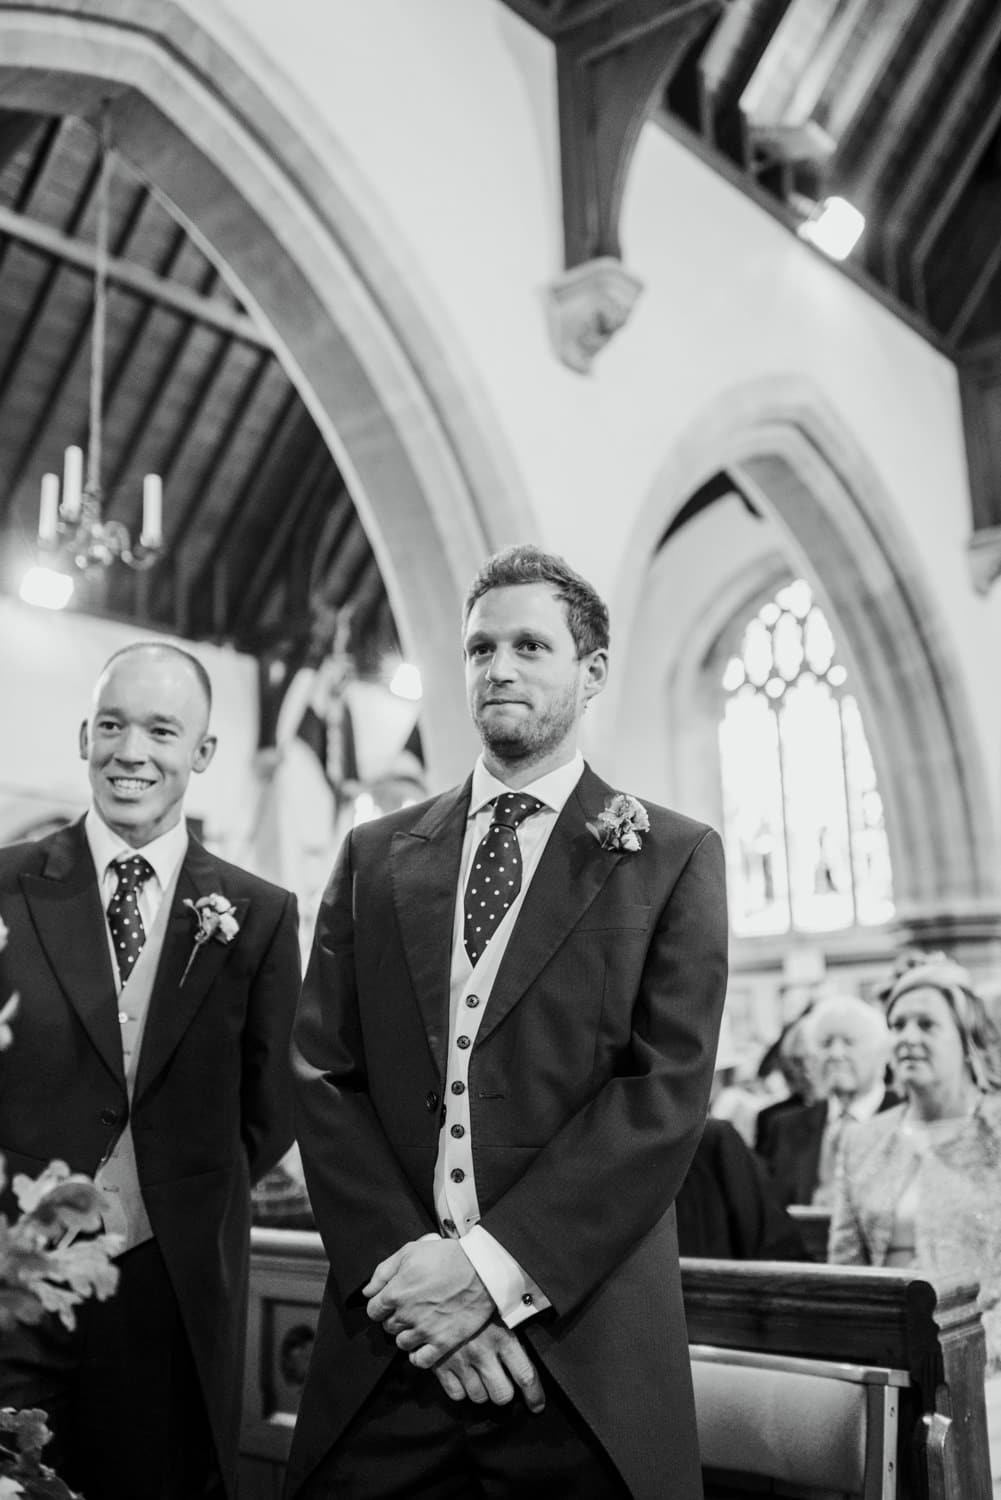 groom waiting for bride to walk down the aisle in church